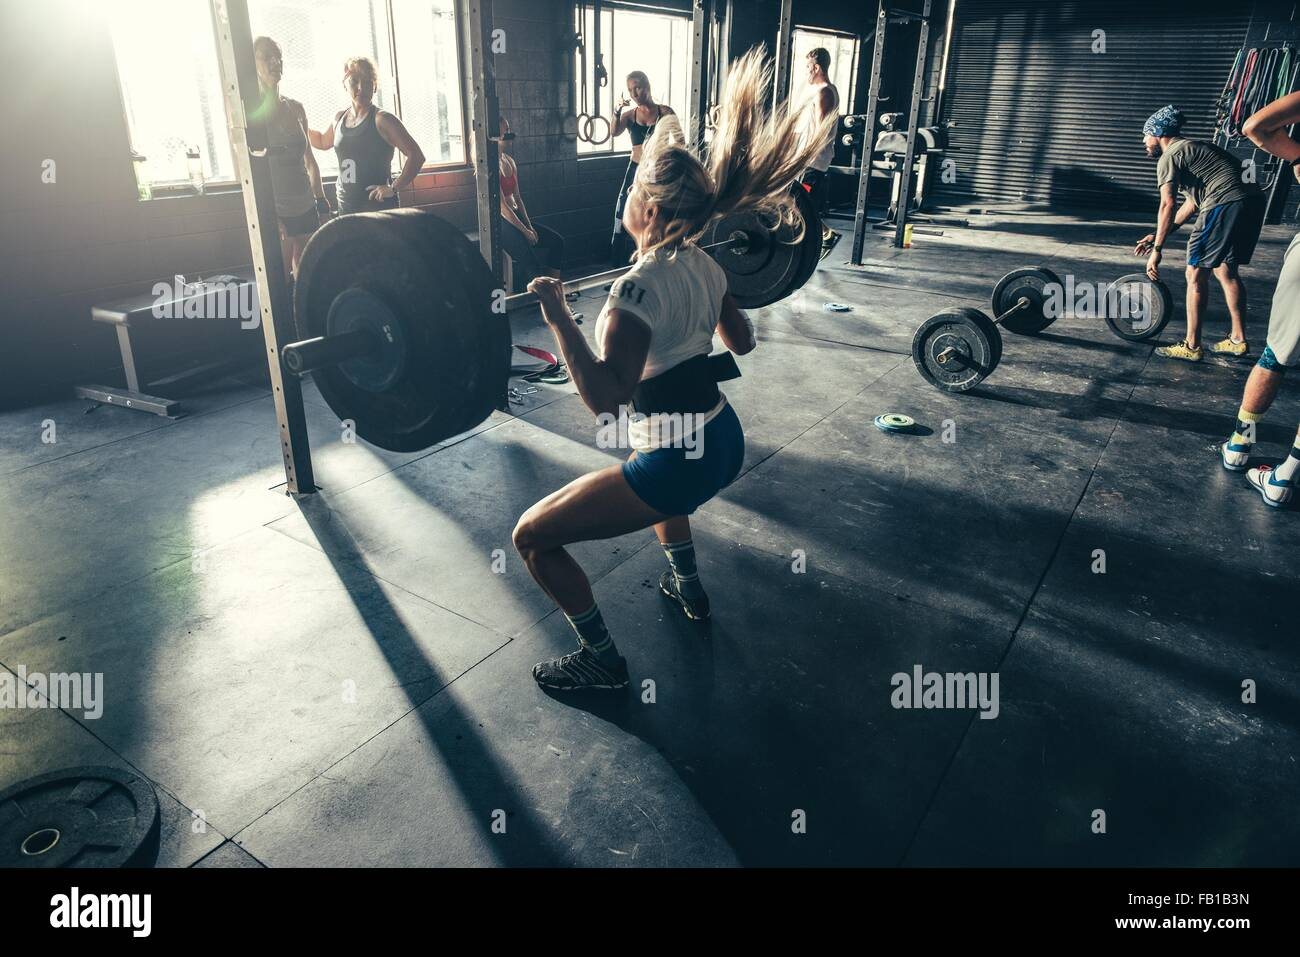 Woman training with barbell in gym Stock Photo